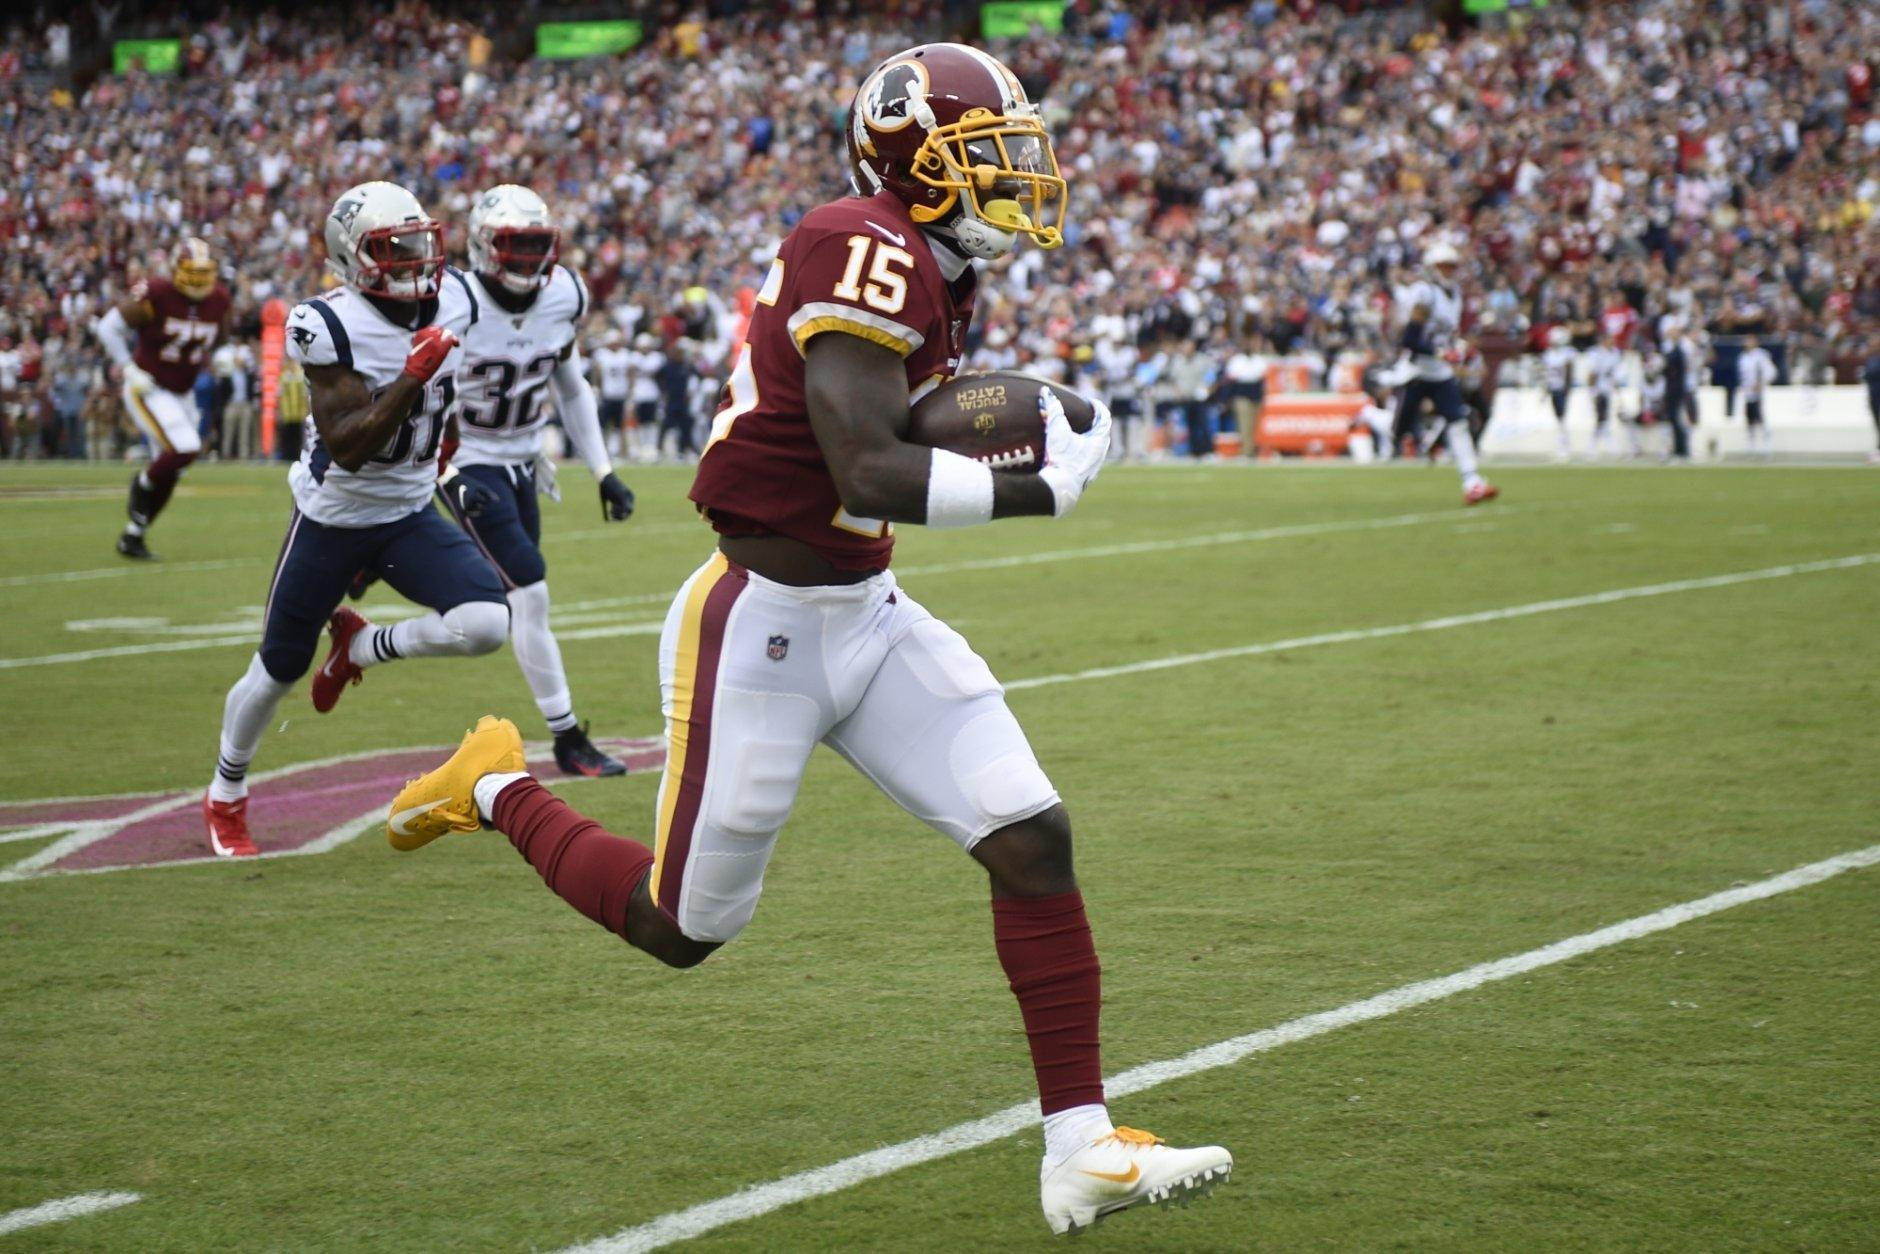 Washington Redskins wide receiver Steven Sims (15) runs for 65-yards for a touchdown against the New England Patriots during the first half of an NFL football game, Sunday, Oct. 6, 2019, in Washington. (AP Photo/Nick Wass)